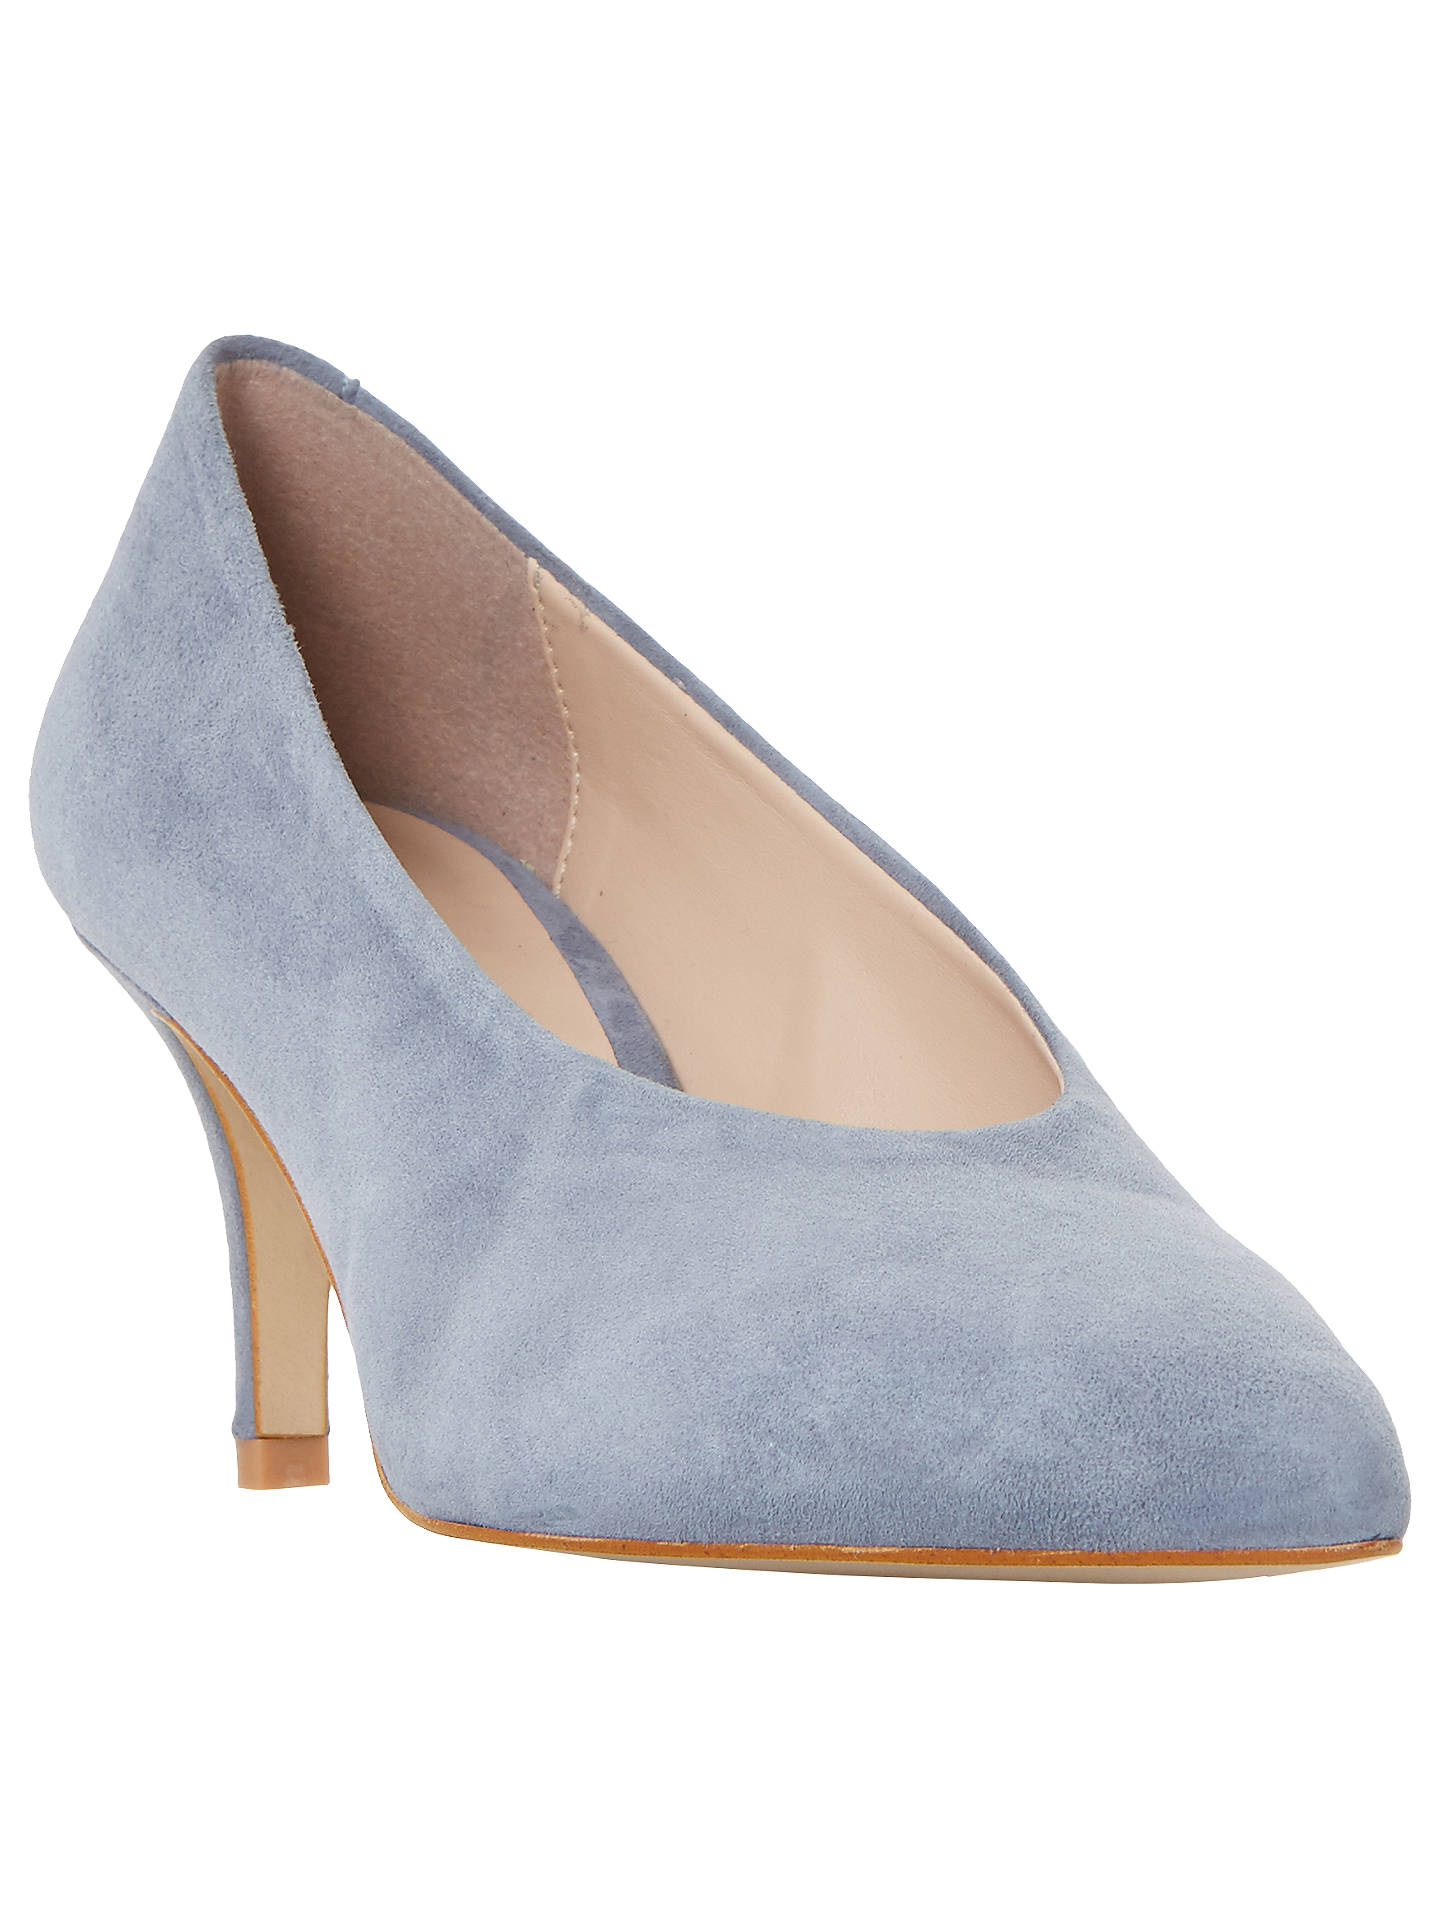 46d0c7fda22a9 Buy Dune Amorell Kitten Heeled Court Shoes, Grey Suede, 3 Online at  johnlewis.